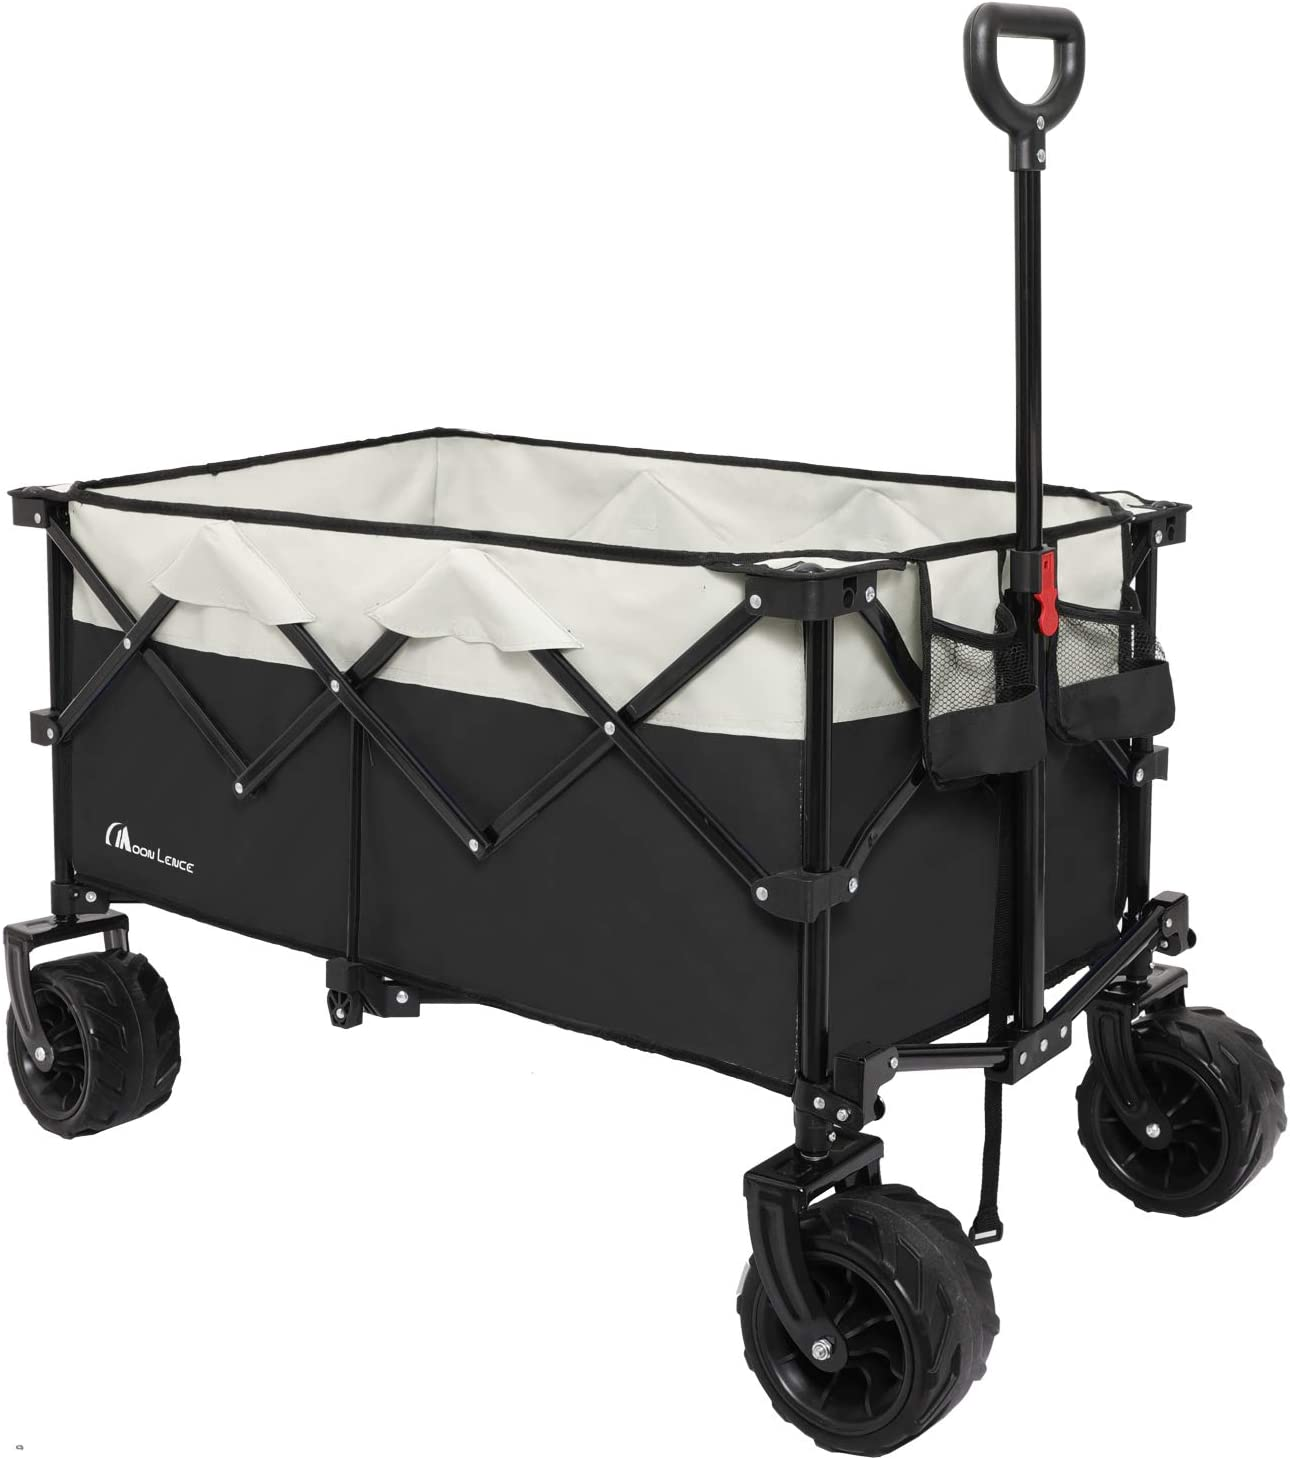 Moon Lence Collapsible Outdoor Utility Wagon Heavy Duty Folding Garden Portable Hand Cart with All-Terrain Beach Wheels, Adjustable Handle & Drink Holders: Kitchen & Dining